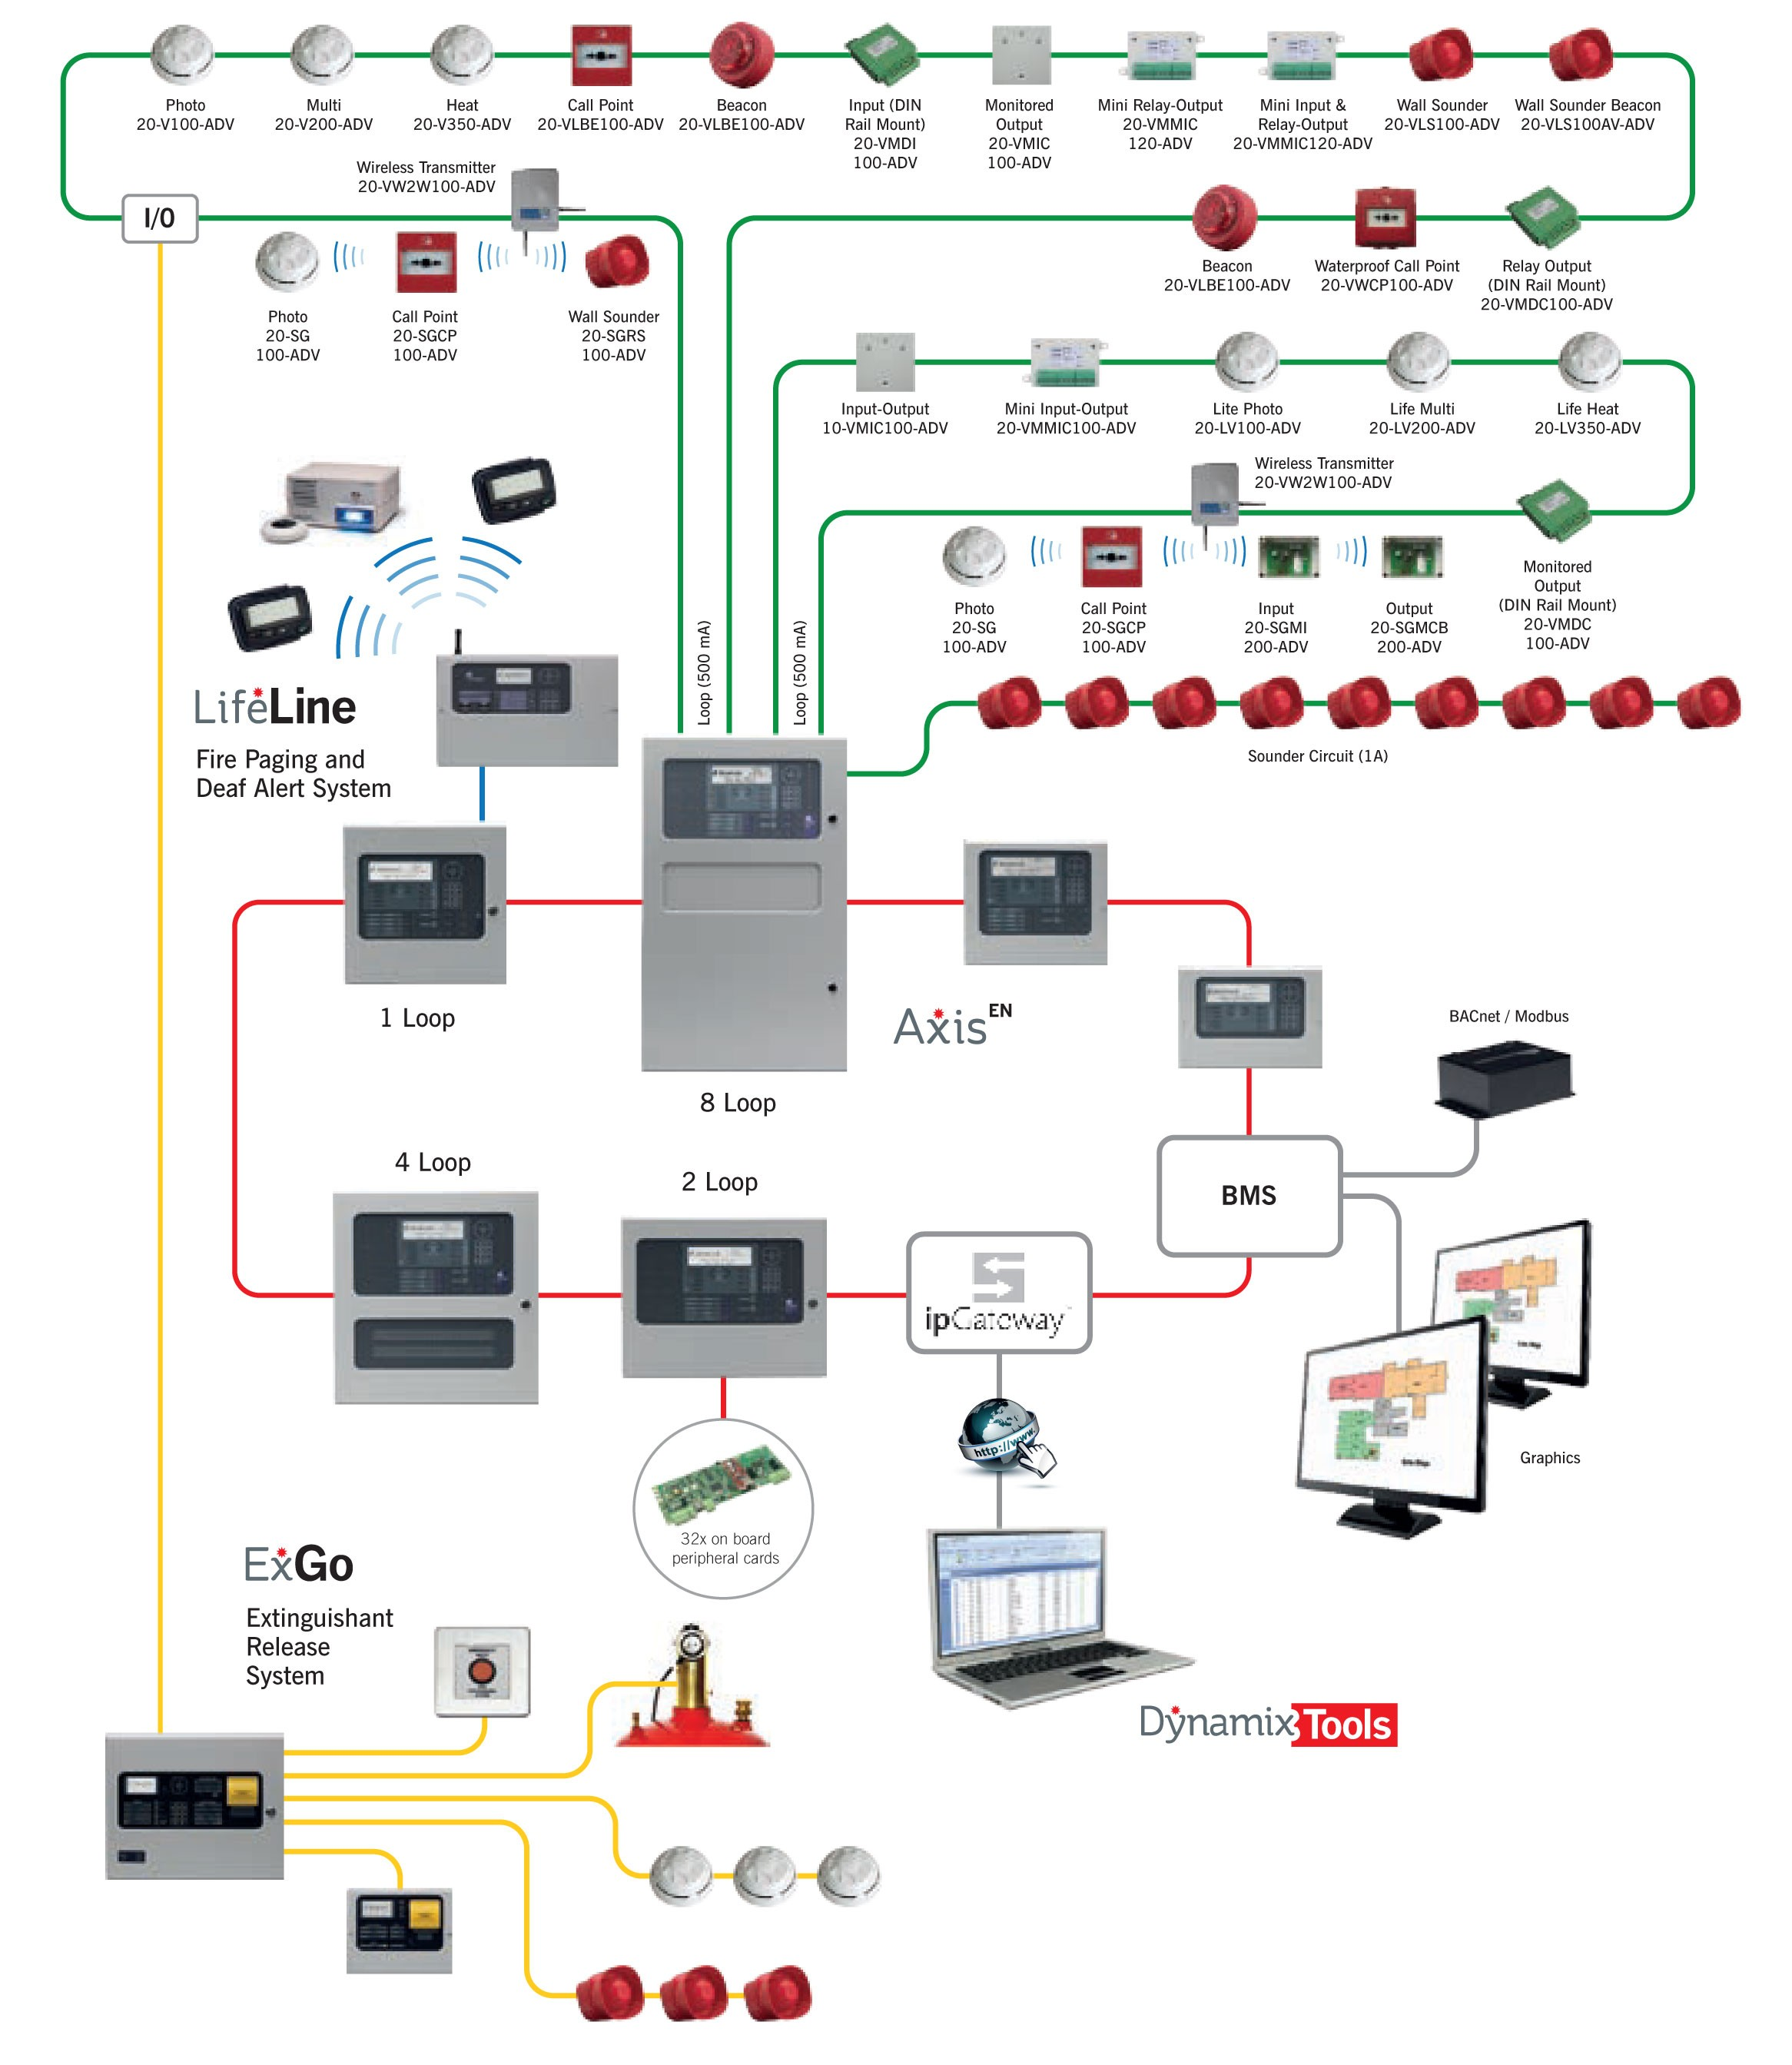 Fire Alarm System Wiring Diagram Mercial Fire Alarm System Wiring Diagram and Addressable Smoke Of Fire Alarm System Wiring Diagram